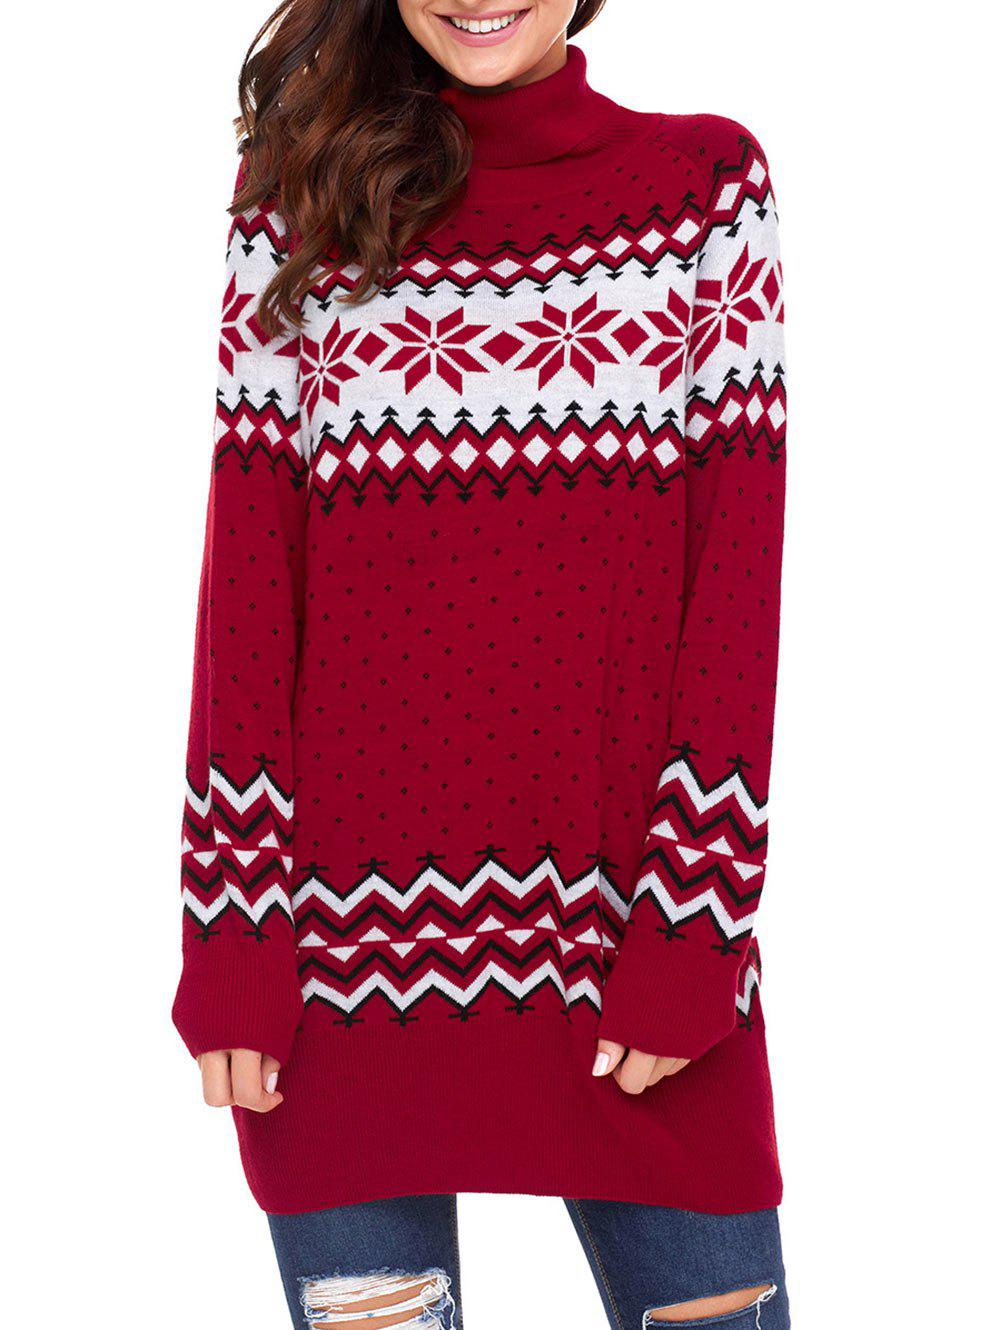 Hot Christmas Snowflake Patterned Turtleneck Tunic Sweater